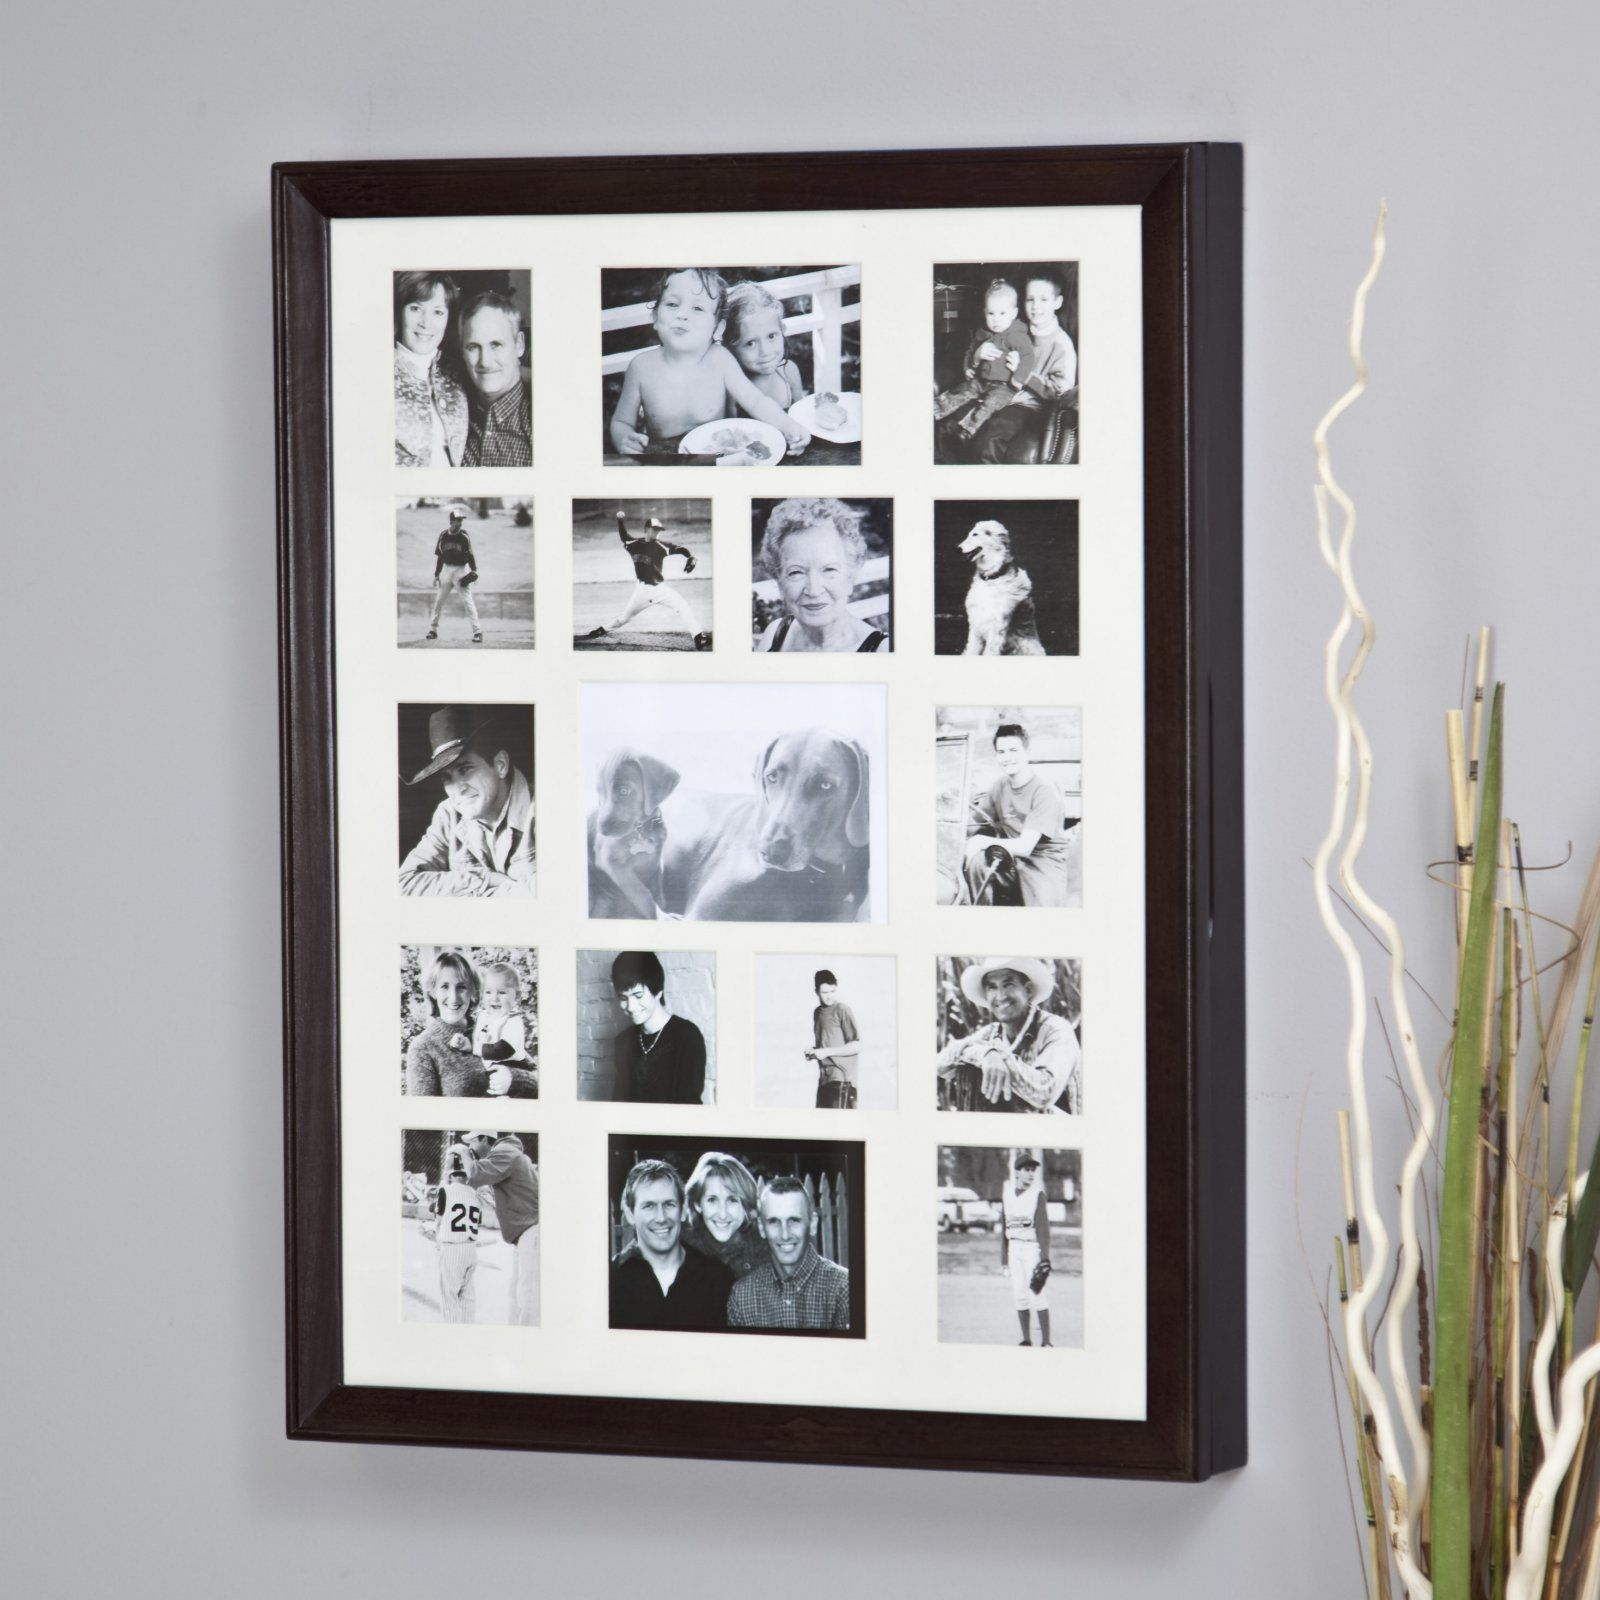 97f1d76ebc02150c1b6739cec04e63b9 - Better Homes And Gardens 4 Opening Rustic Windowpane Collage Frame